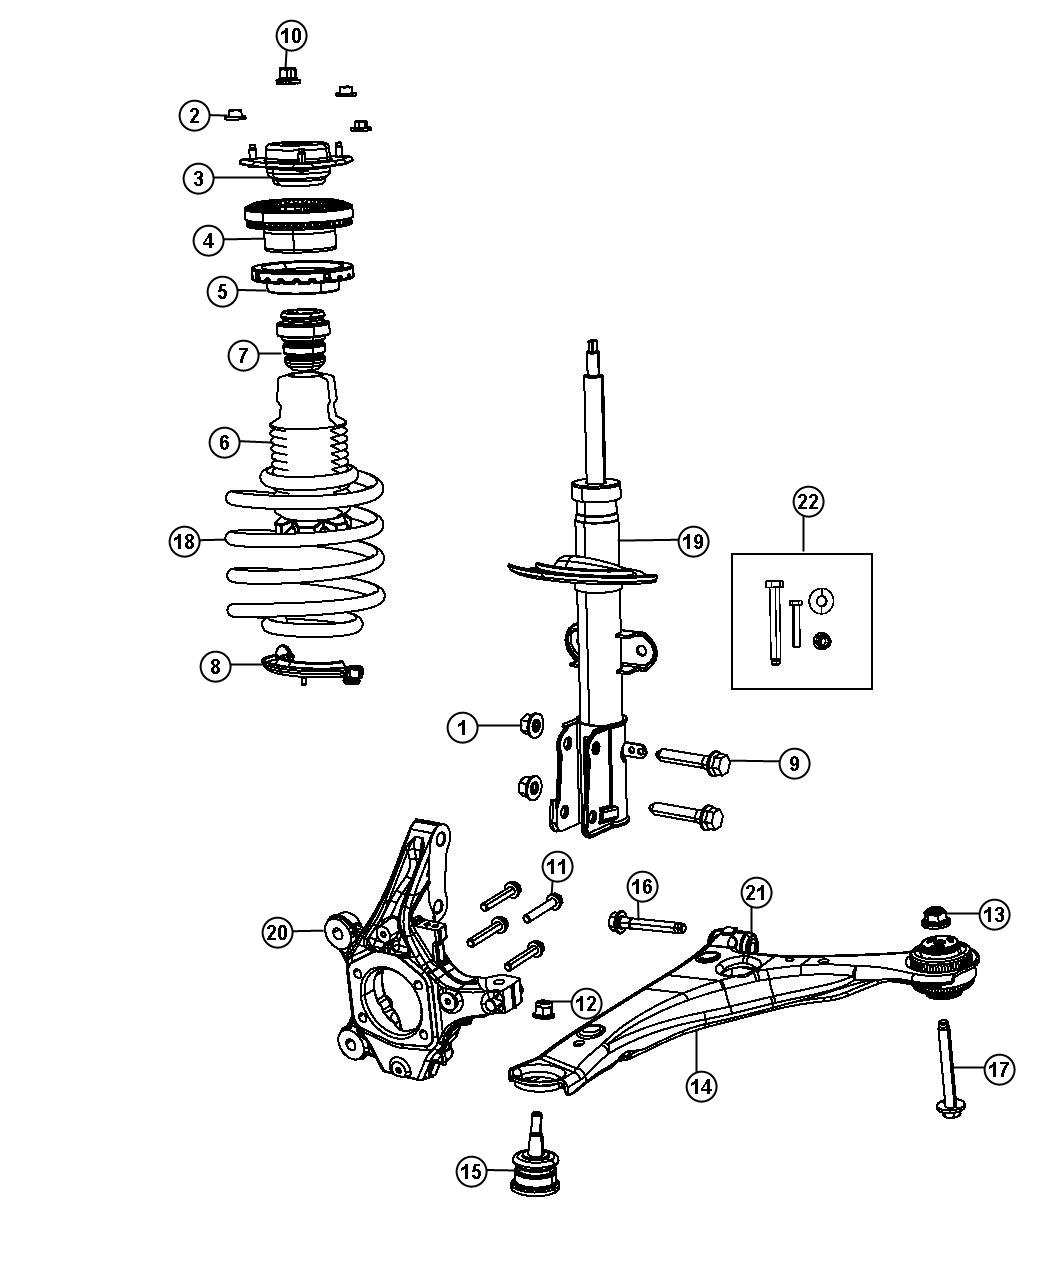 hight resolution of 95 saturn cooling system diagram saturn auto wiring diagram 1997 saturn wiring diagram 2001 saturn sc2 wiring diagram